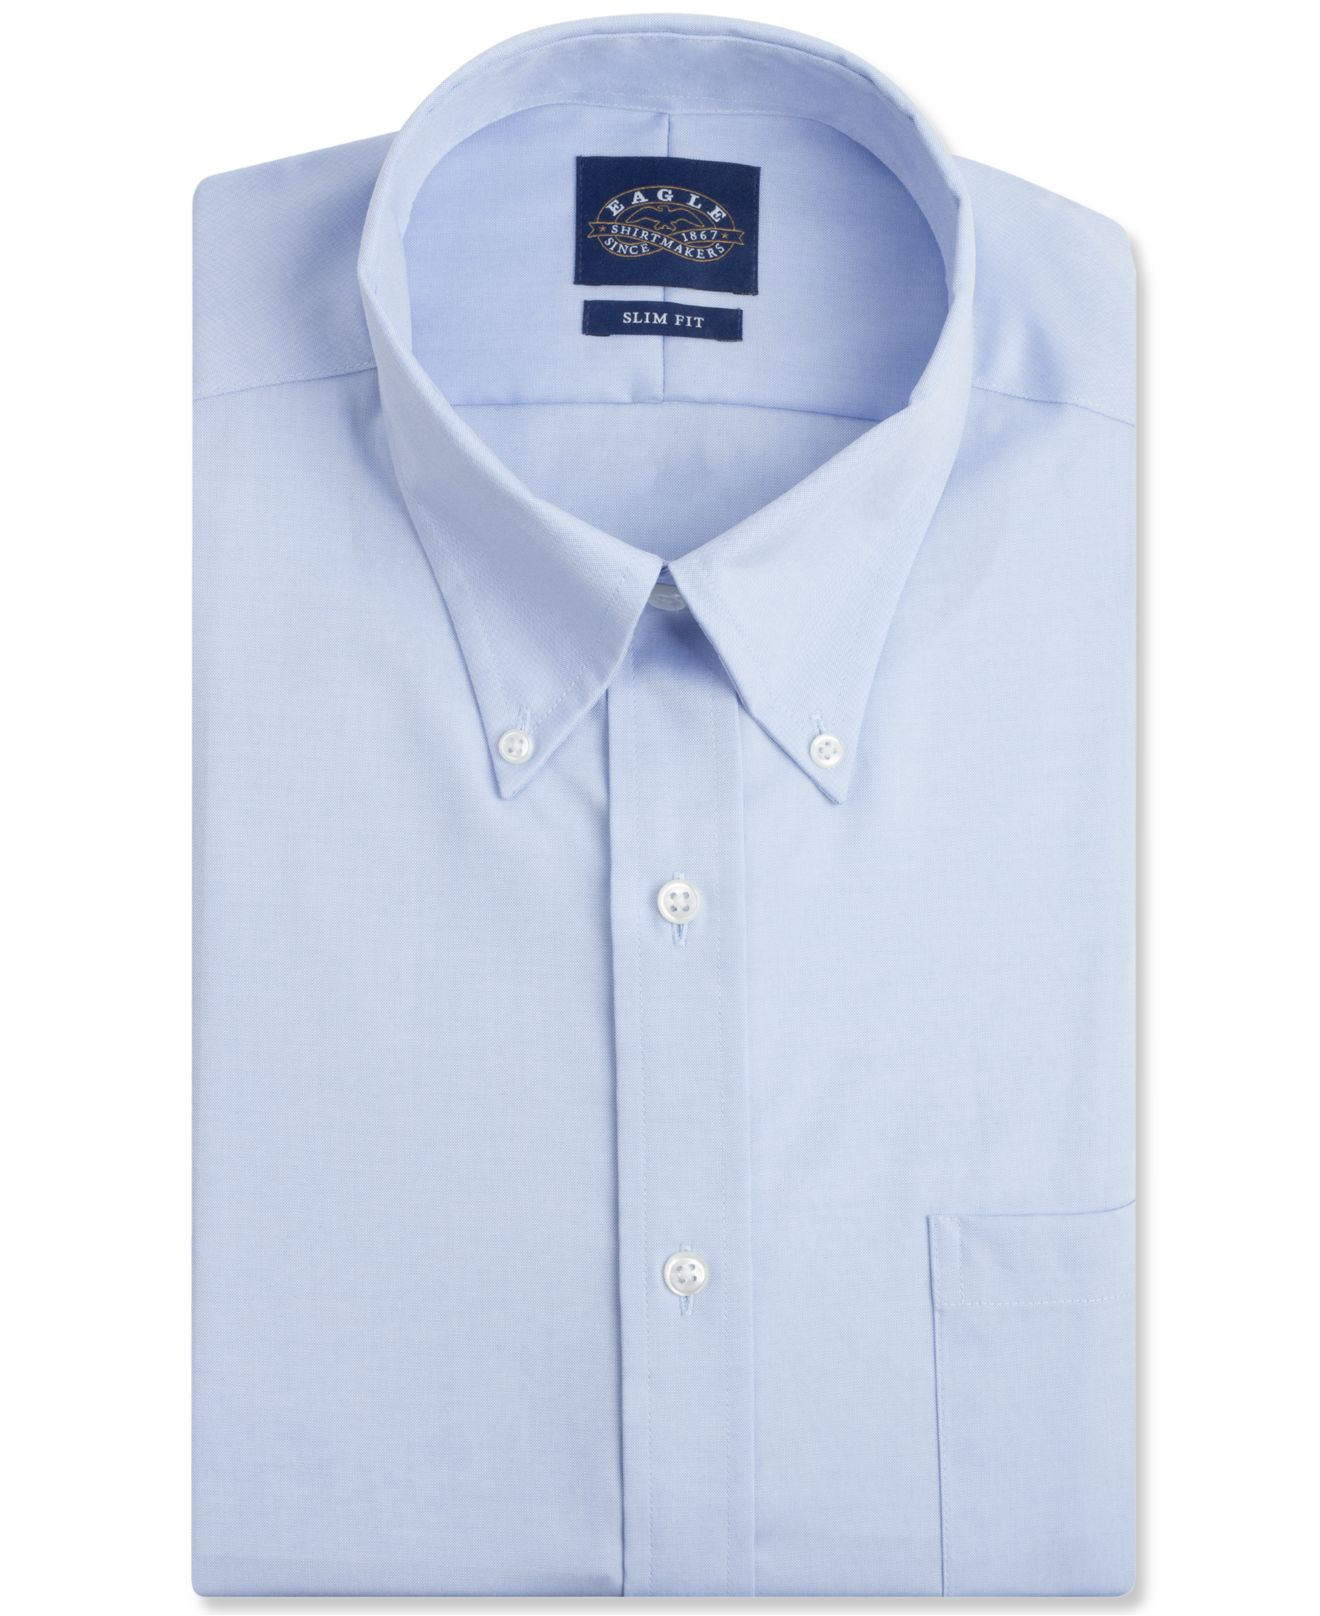 Eagle Men 39 S Slim Fit Non Iron Pinpoint Dress Shirt In Blue